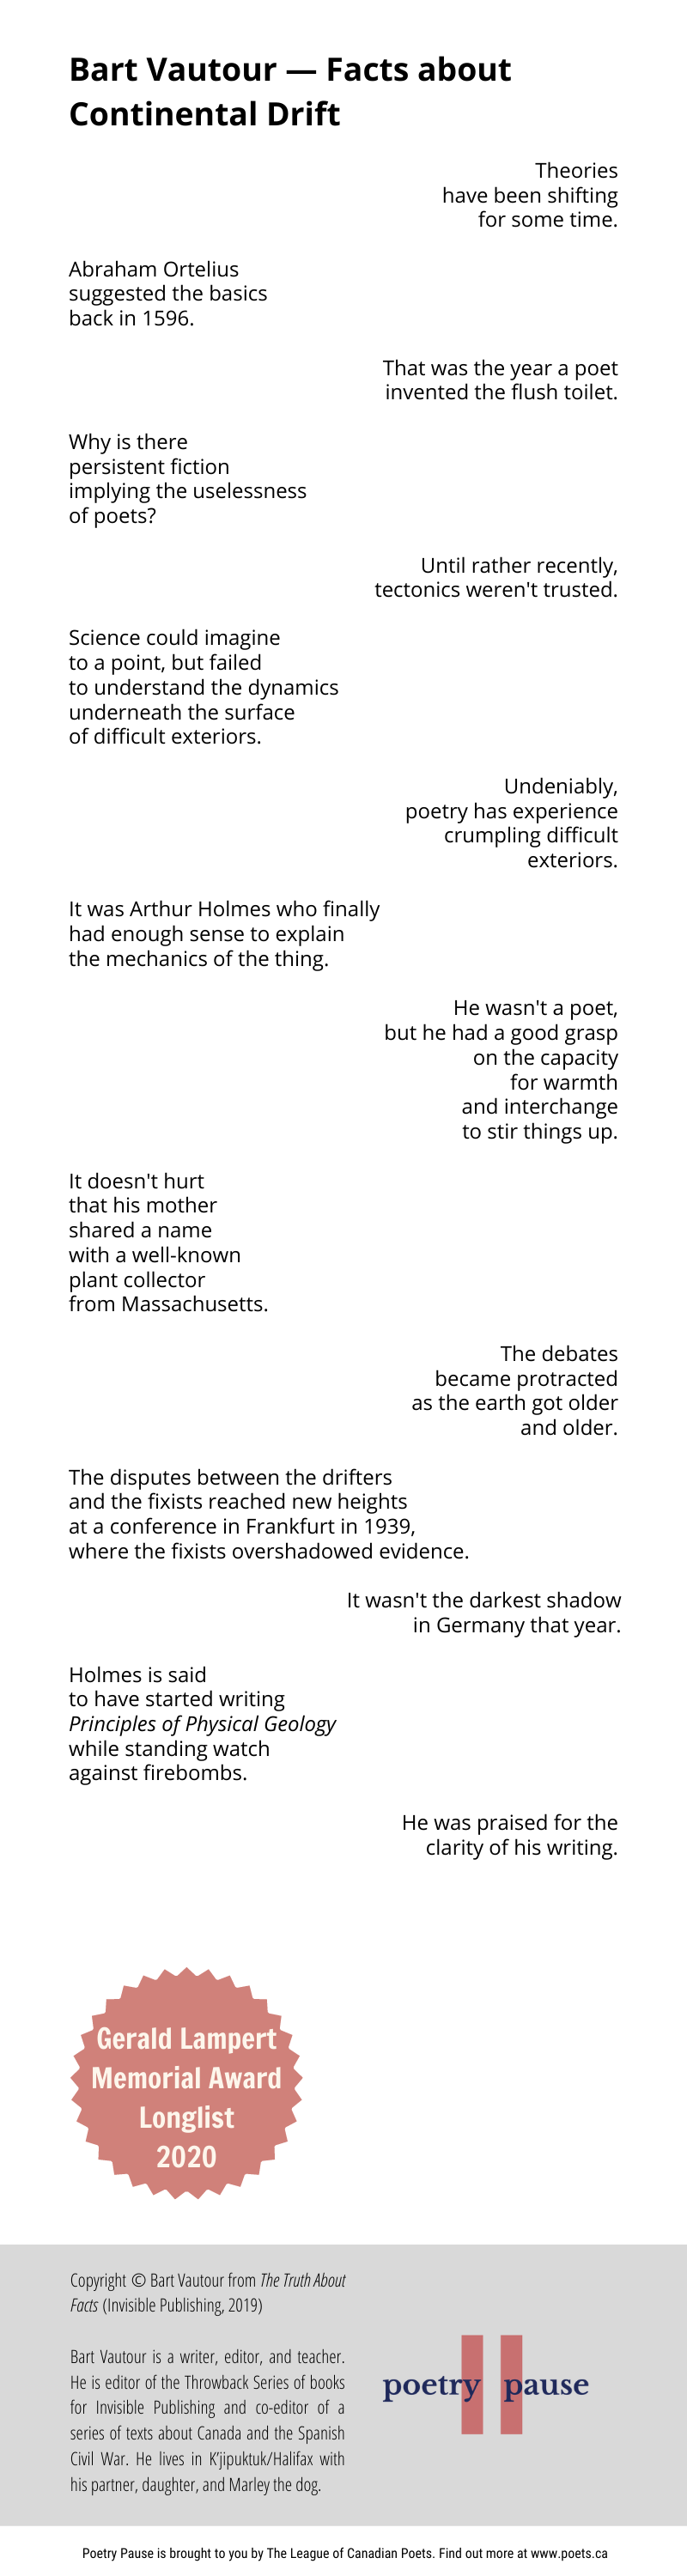 Poem Author: Bart Vautour Poem title: Facts about Continental Drift Poem: Theories have been shifting for some time. Abraham Ortelius suggested the basics back in 1596. That was the year a poet invented the flush toilet. Why is there persistent fiction implying the uselessness of poets? Until rather recently, tectonics weren't trusted. Science could imagine to a point, but failed to understand the dynamics underneath the surface of difficult exteriors. Undeniably, poetry has experience crumpling difficult exteriors. It was Arthur Holmes who finally had enough sense to explain the mechanics of the thing. He wasn't a poet, but he had a good grasp on the capacity for warmth and interchange to stir things up. It doesn't hurt that his mother shared a name with a well-known plant collector from Massachusetts. The debates became protracted as the earth got older and older. The disputes between the drifters and the fixists reached new heights at a conference in Frankfurt in 1939, where the fixists overshadowed evidence. It wasn't the darkest shadow in Germany that year. Holmes is said to have started writing Principles of Physical Geology while standing watch against firebombs. He was praised for the clarity of his writing. End of poem. Credits: Copyright © Bart Vautour from The Truth About Facts (Invisible Publishing, 2019) Bart Vautour is a writer, editor, and teacher. He is editor of the Throwback Series of books for Invisible Publishing and co-editor of a series of texts about Canada and the Spanish Civil War. He lives in K'jipuktuk/Halifax with his partner, daughter, and Marley the dog.